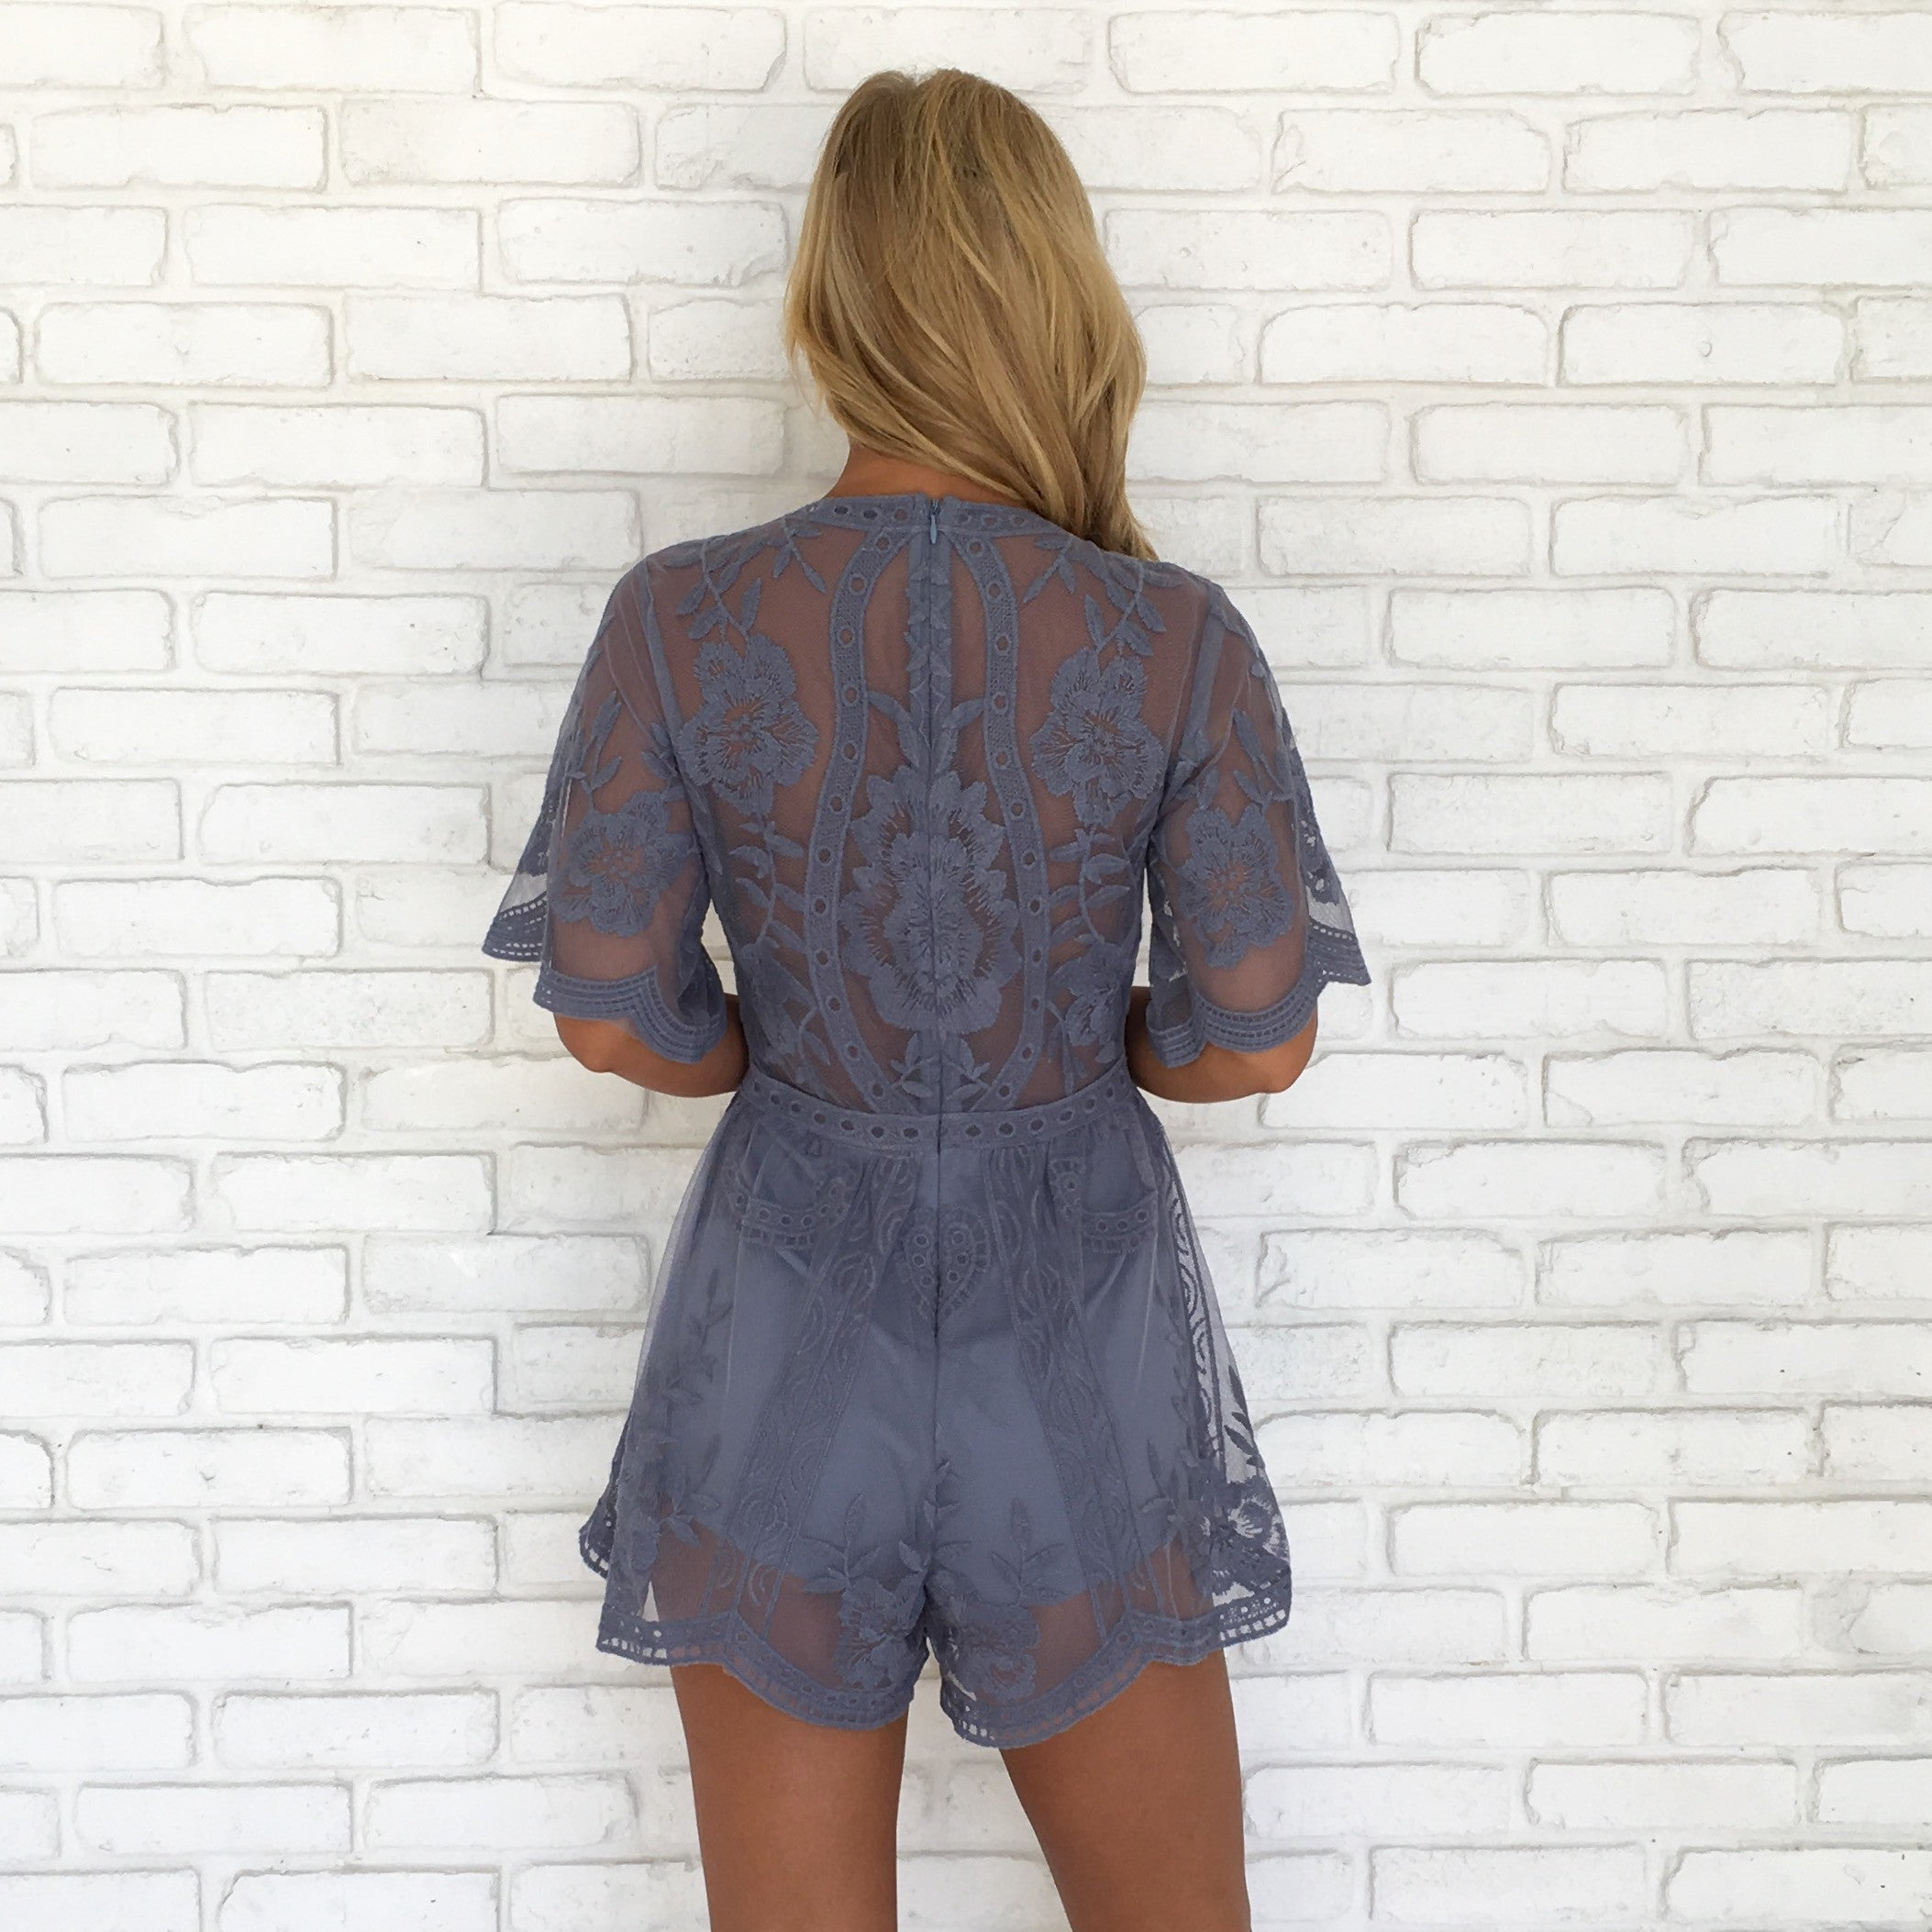 c76e136b4d50 Popping Chic   Lace Romper in Dusty Blue - Dainty Hooligan Boutique